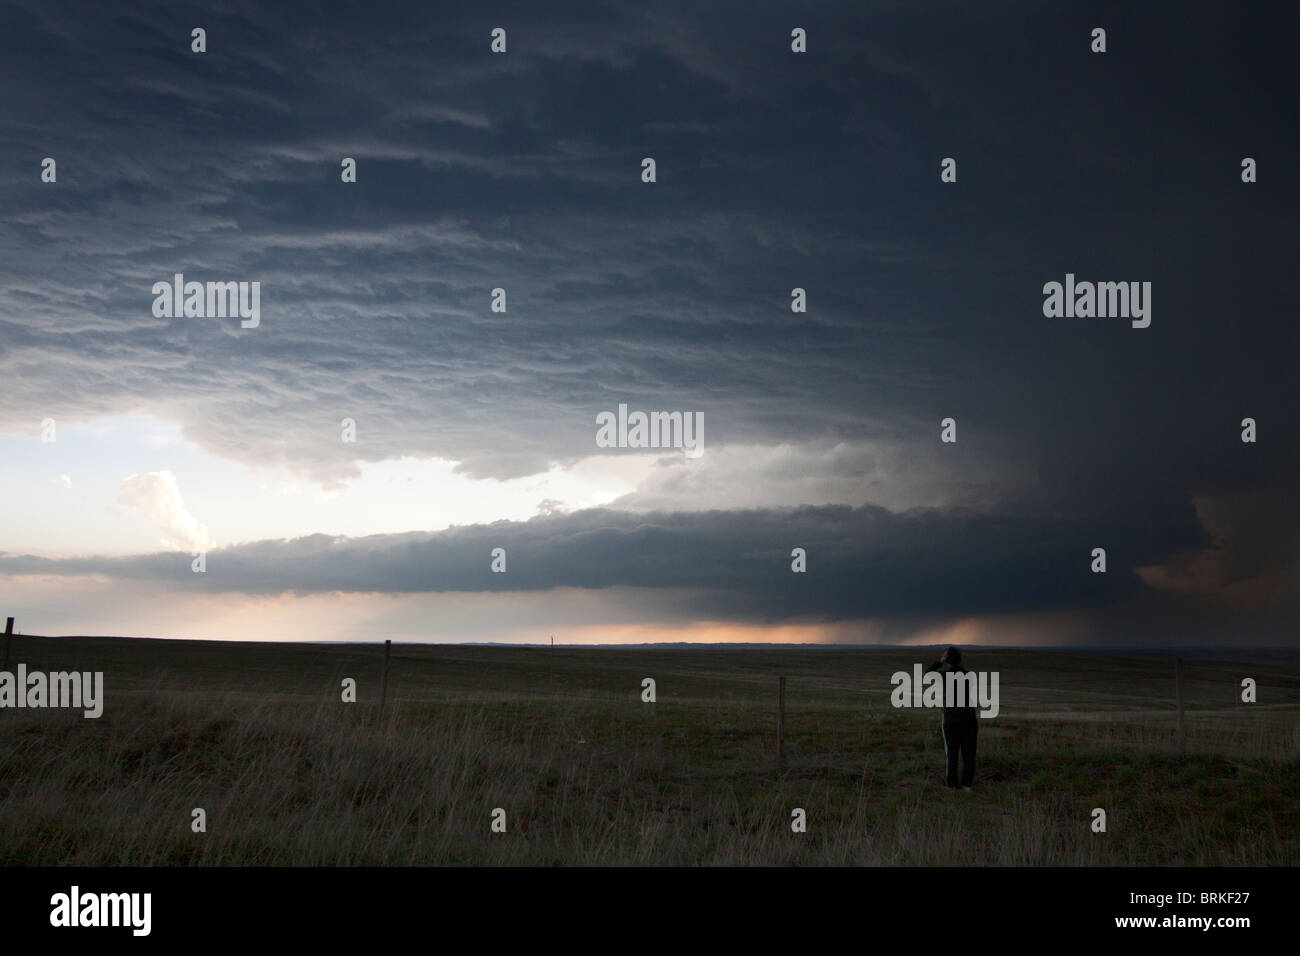 A supercellular thunderstorm in rural Wyoming, May 21, 2010. - Stock Image